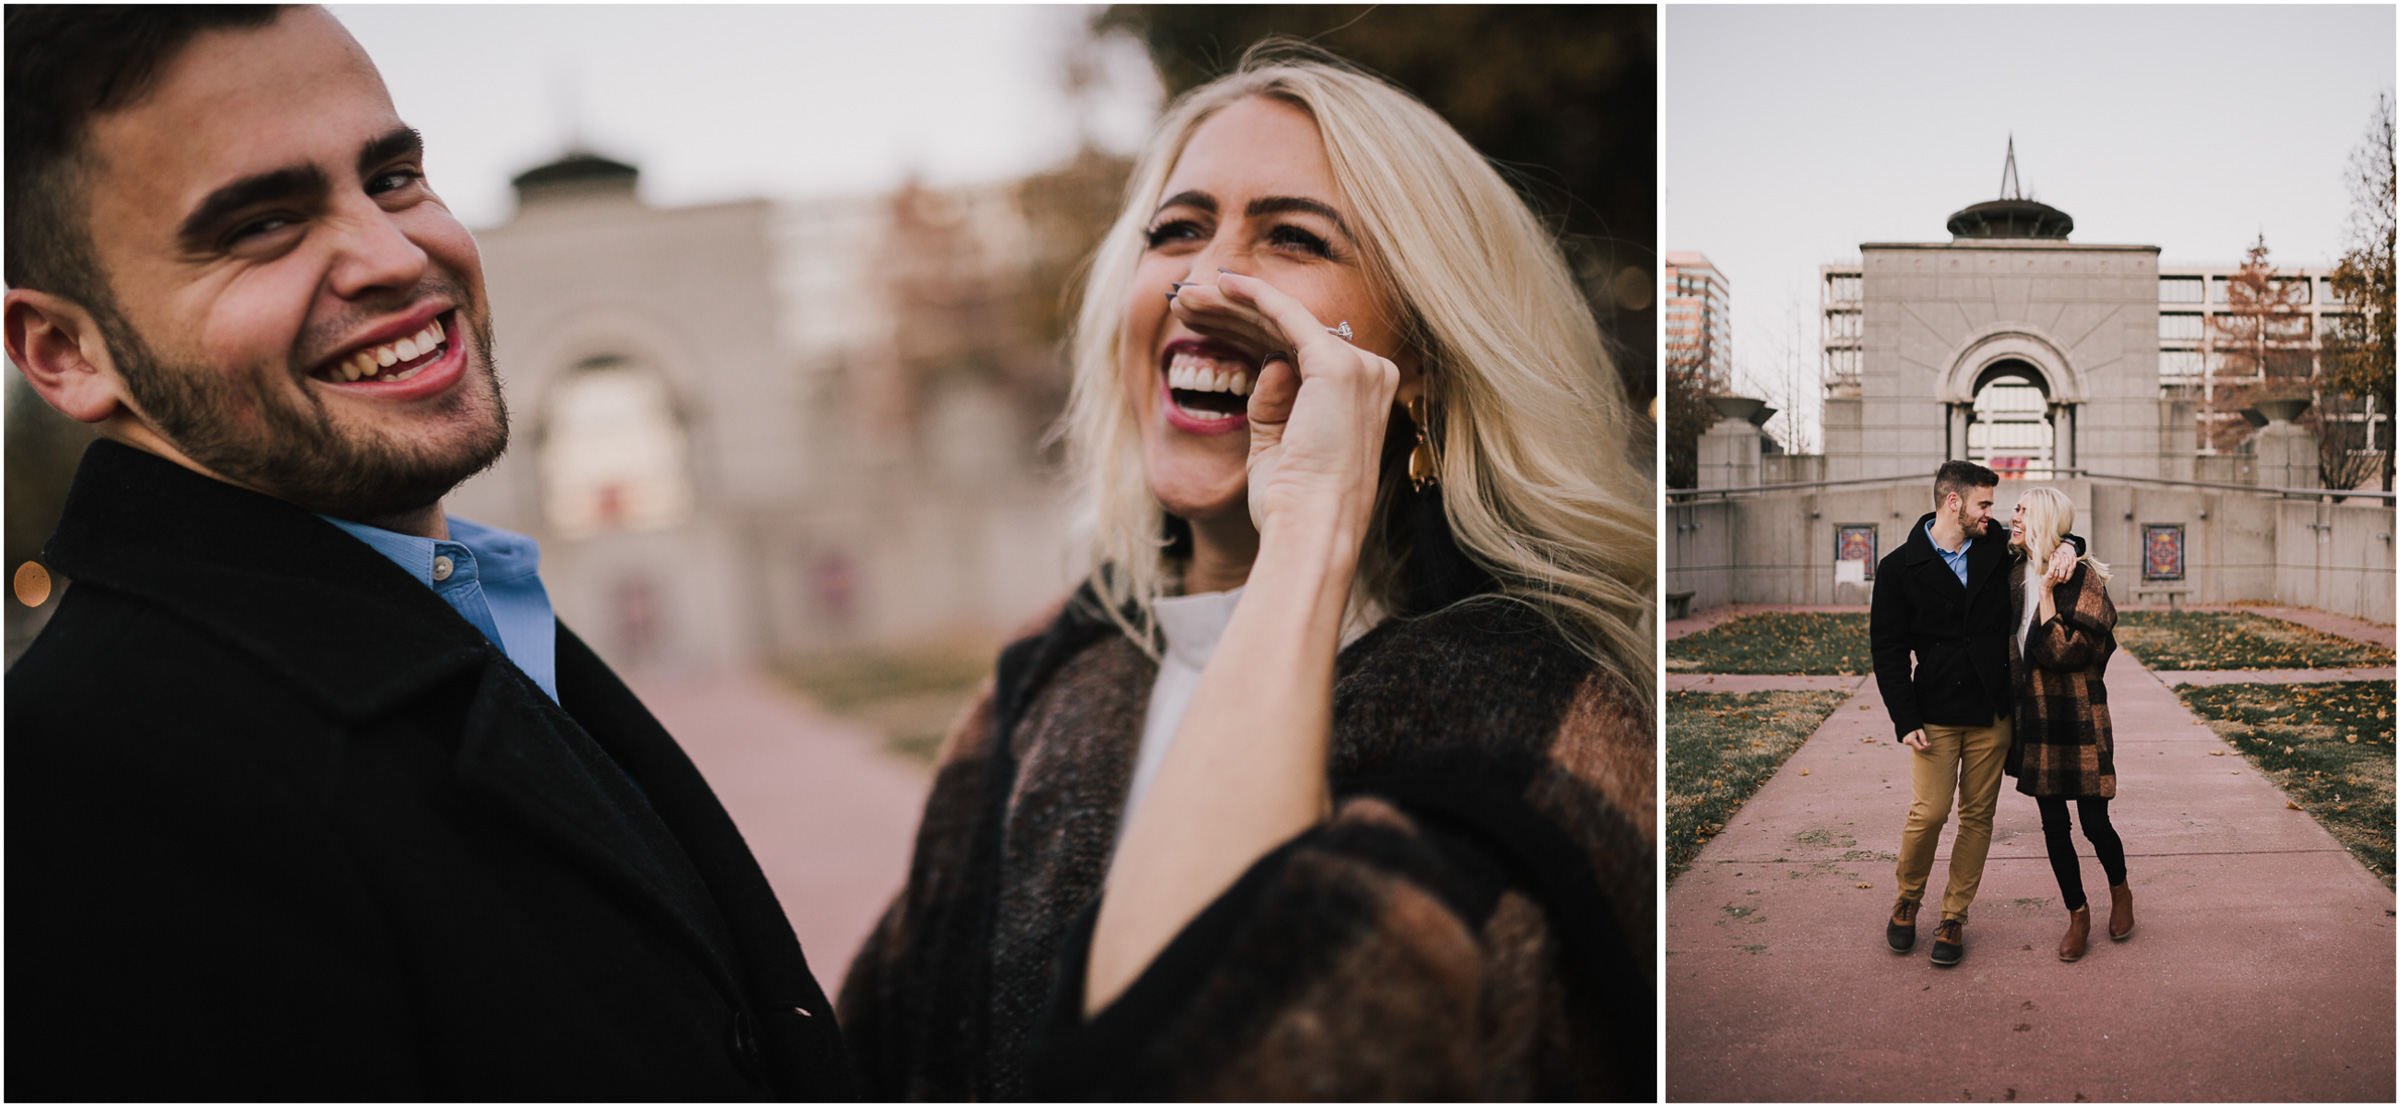 alyssa barletter photography proposal country club plaza park fall engagement how he asked she said yes-14.jpg